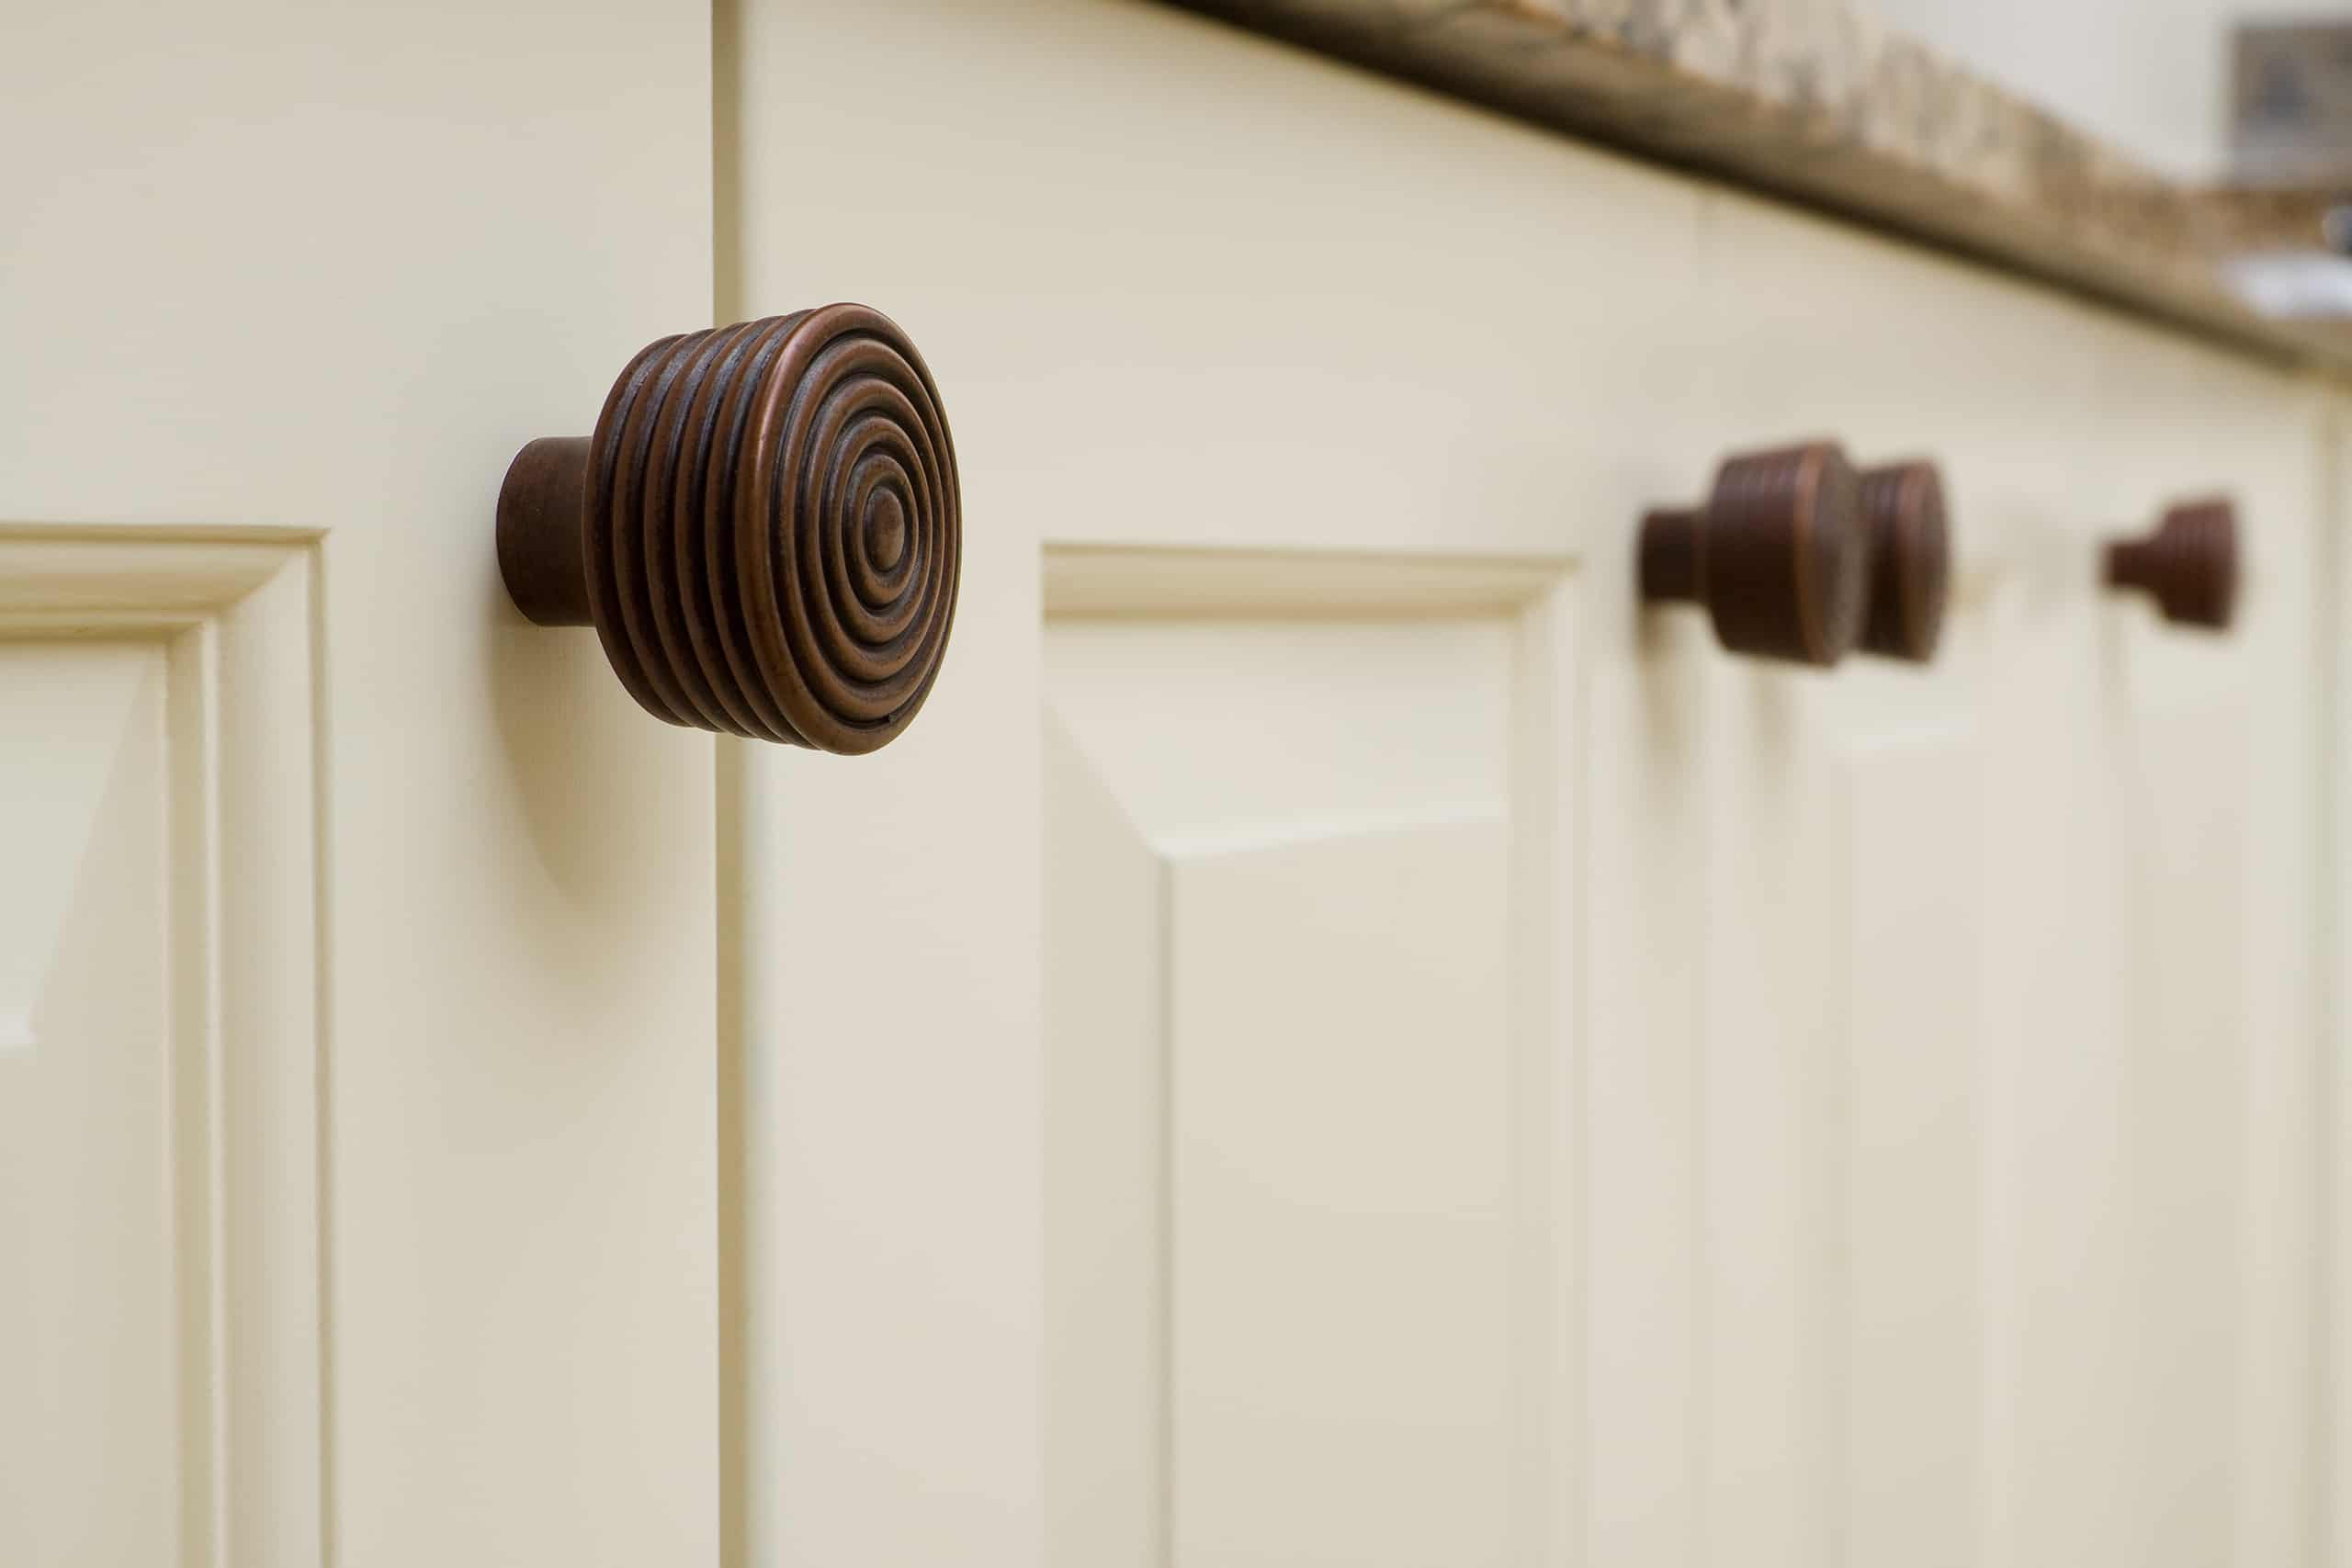 Modern brass cabinet door knobs